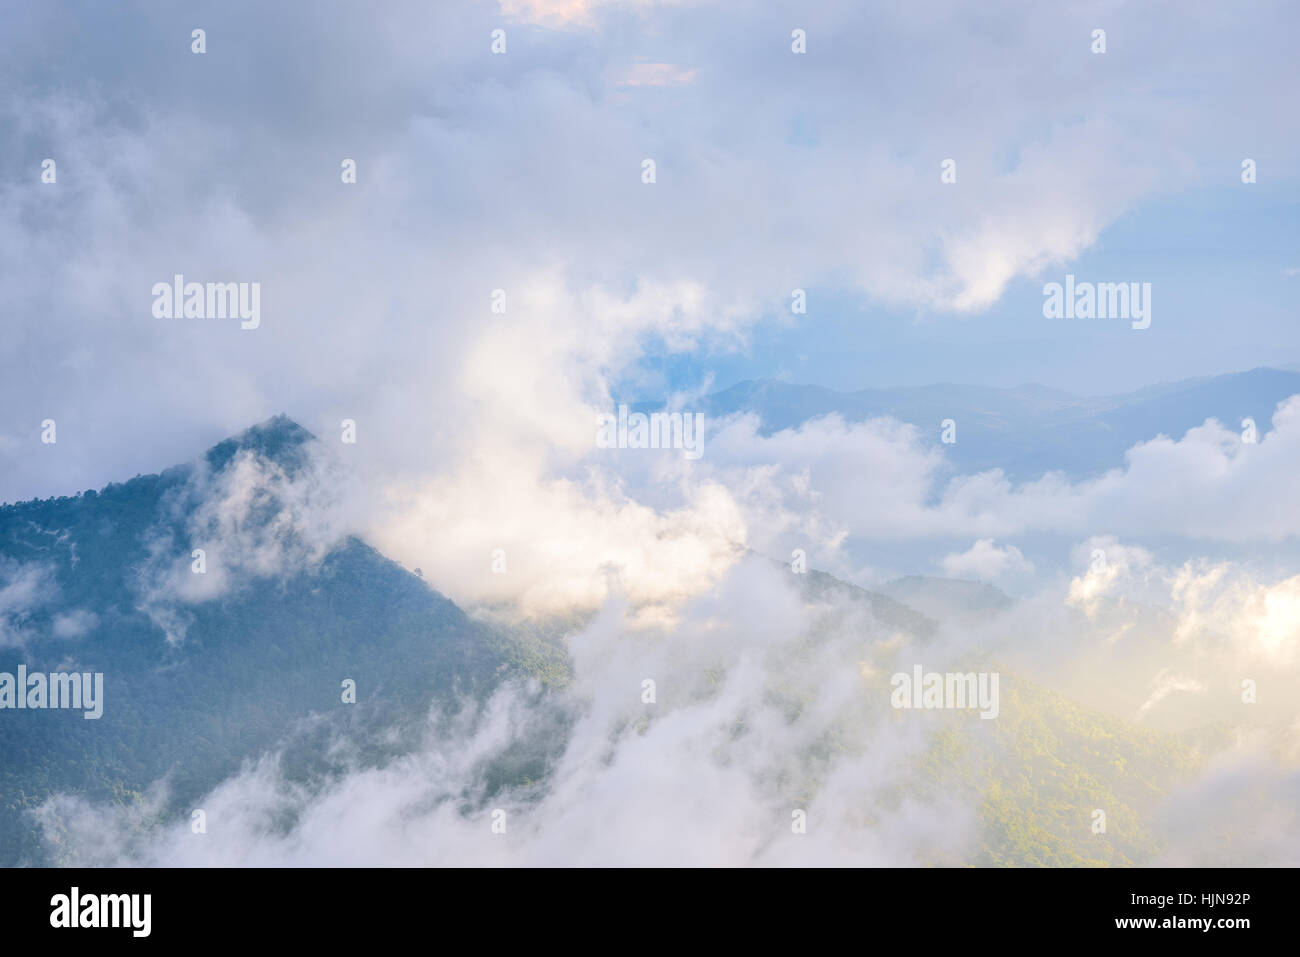 Cloud around mountain with sun shine in the sunset. - Stock Image